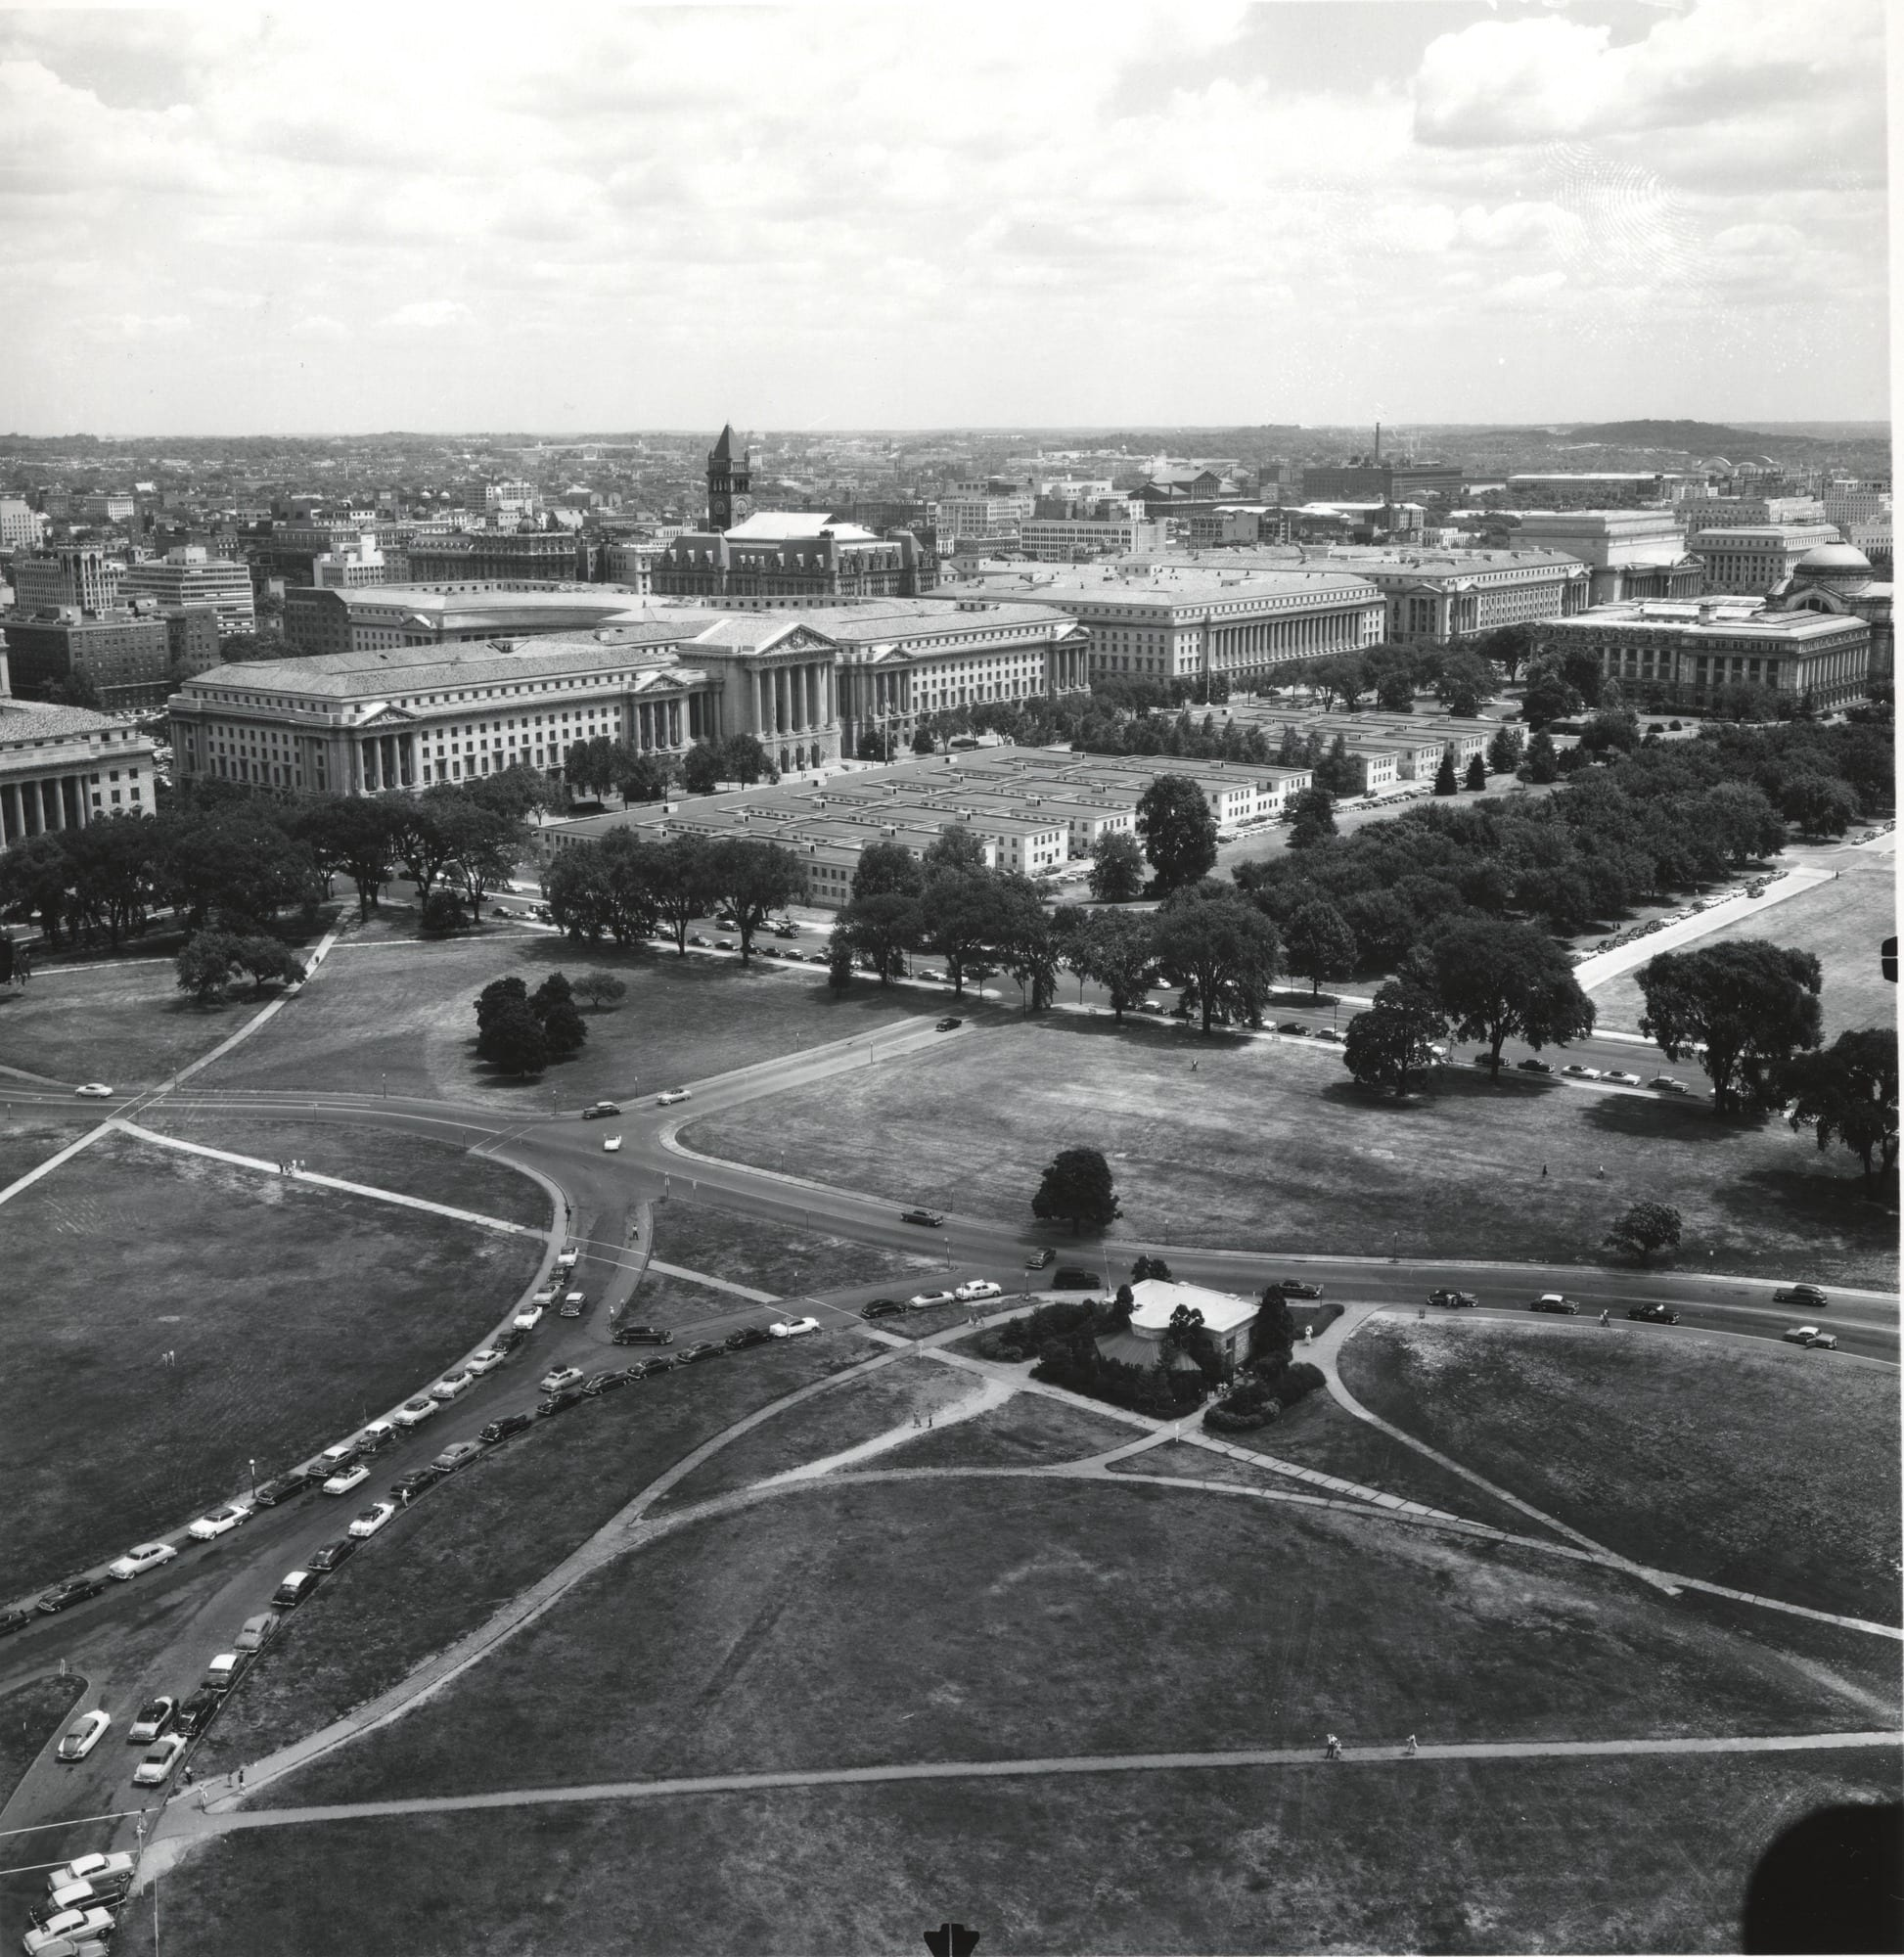 Temporary Wartime Buildings on the Mall as Viewed from the Washington Monument